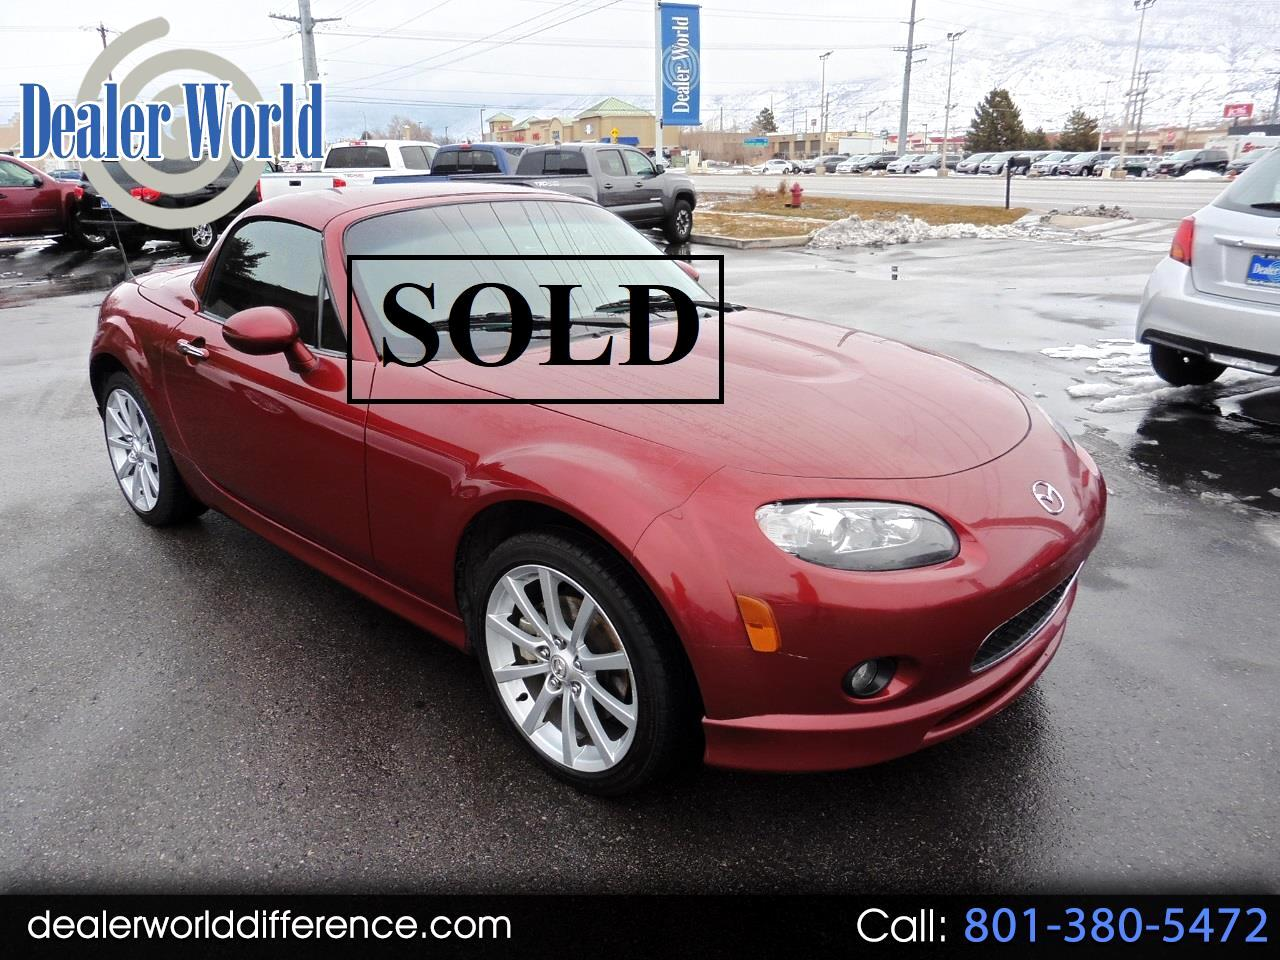 2008 Mazda MX-5 Miata Grand Touring Power Retractable Hardtop